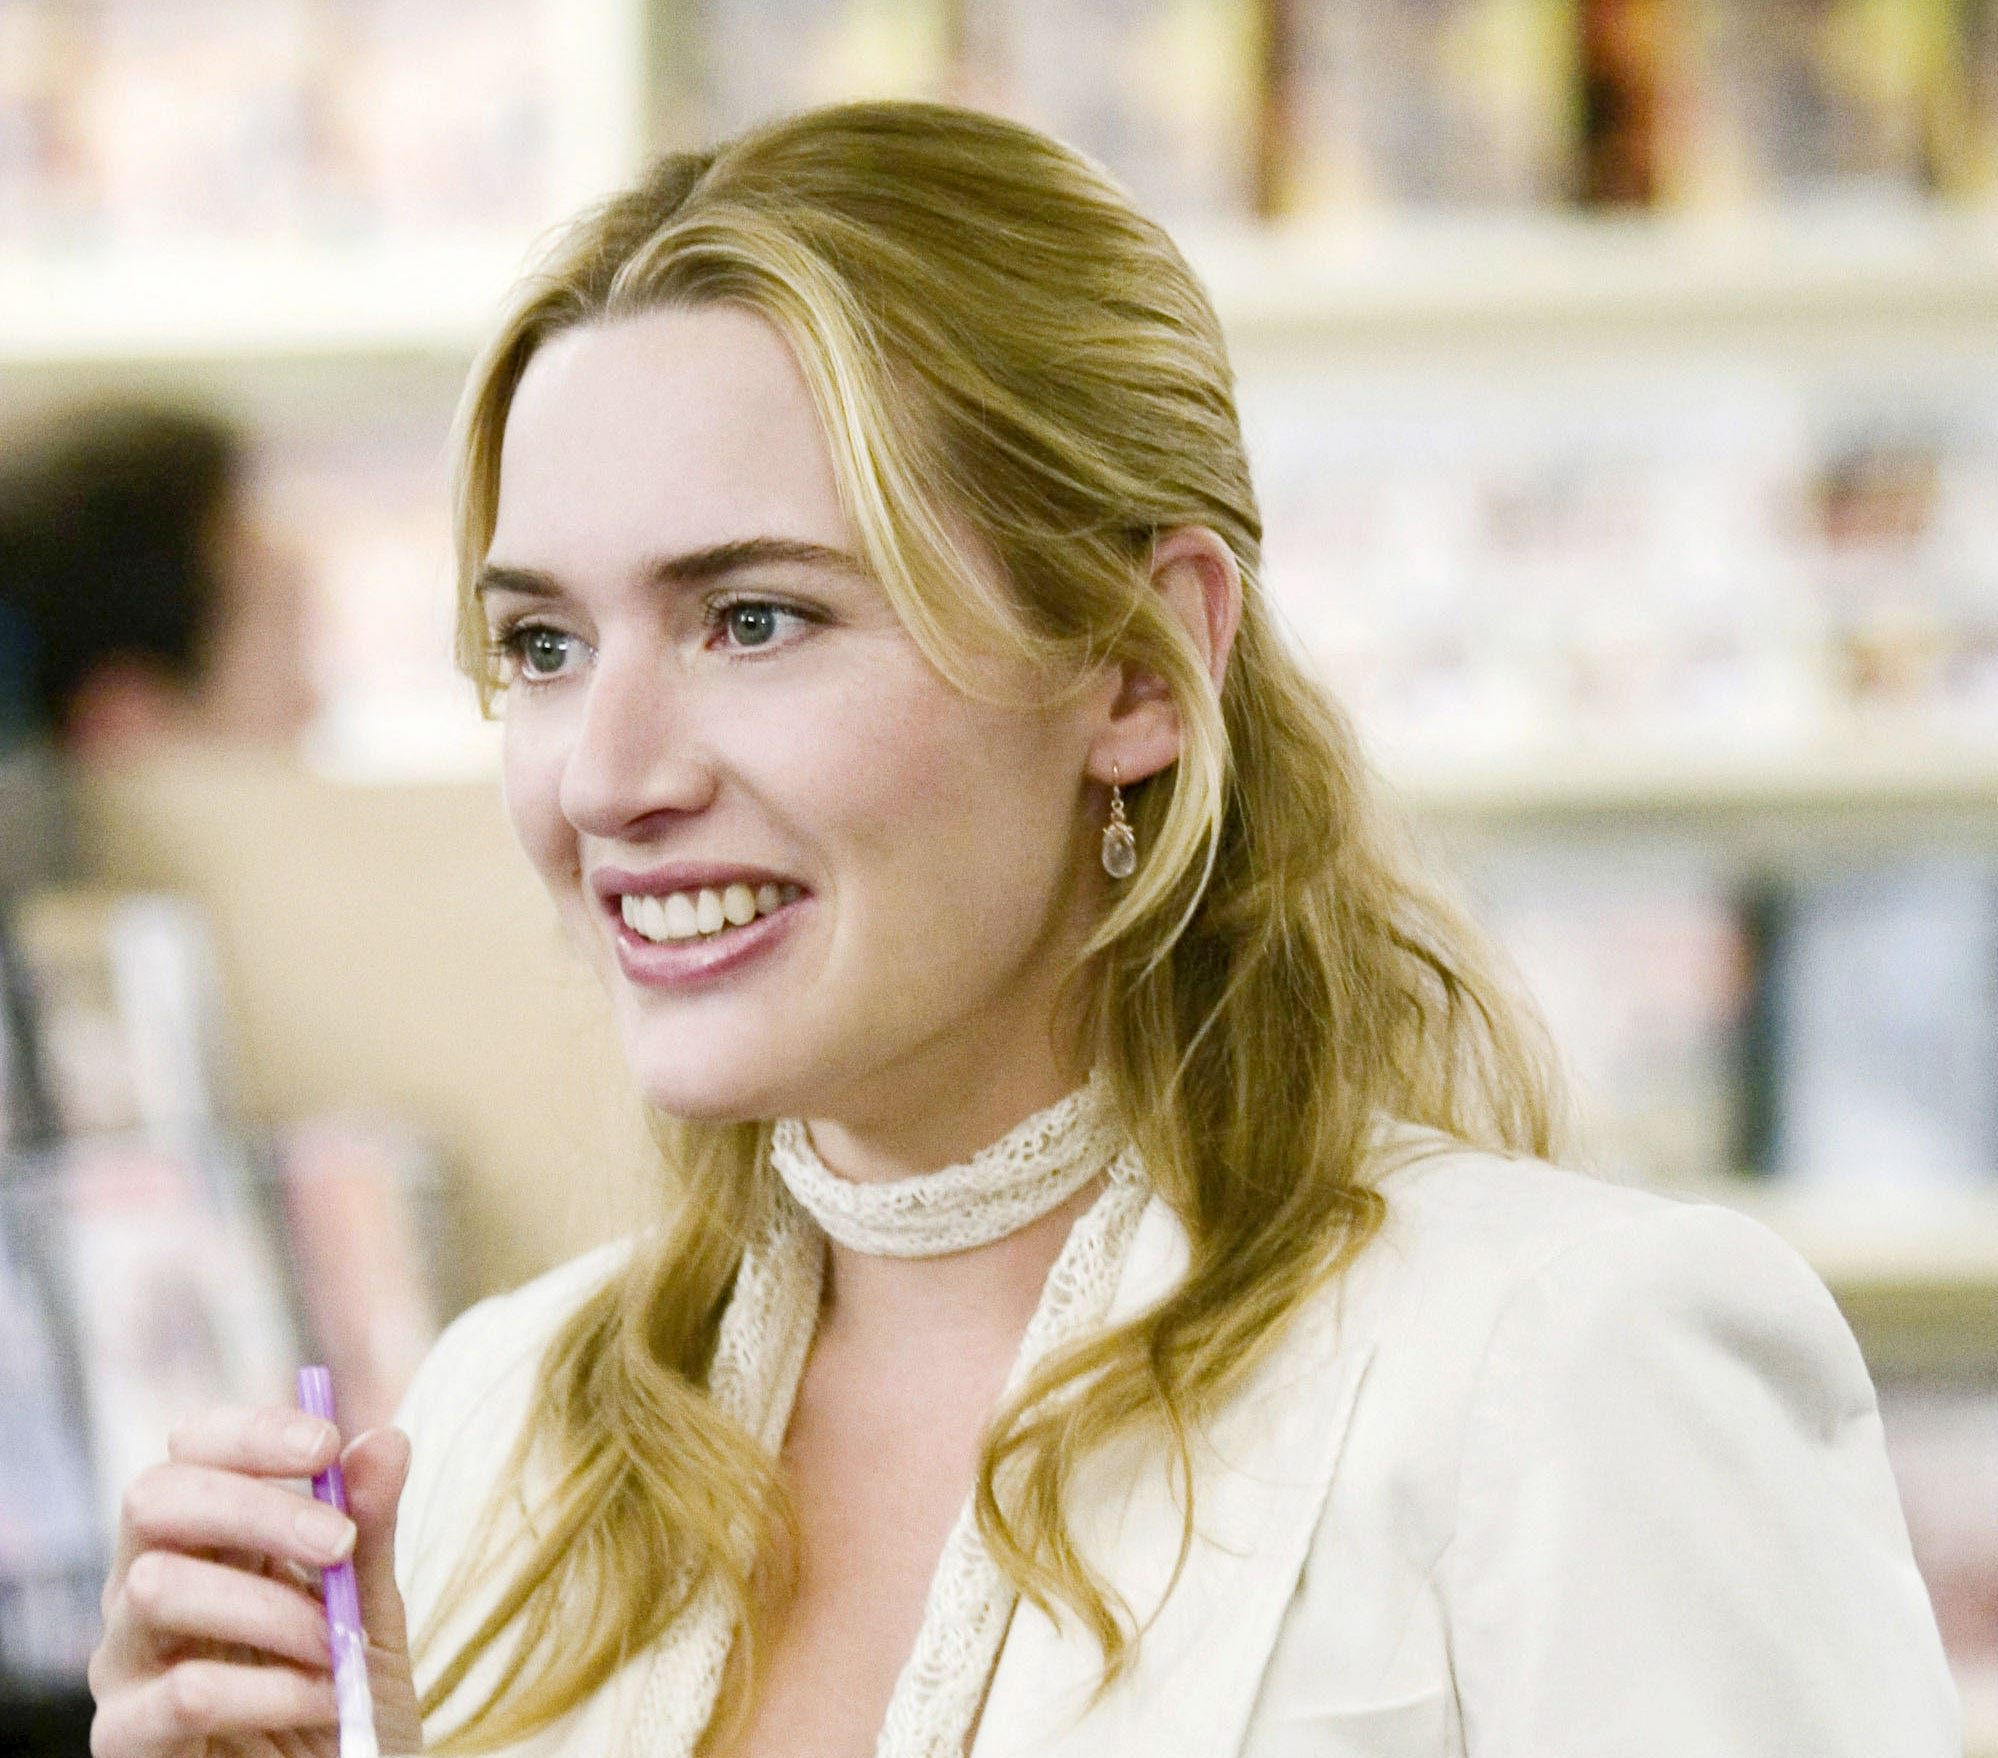 pal 2 e1602664298204 20 Things You Might Not Have Realised About Kate Winslet